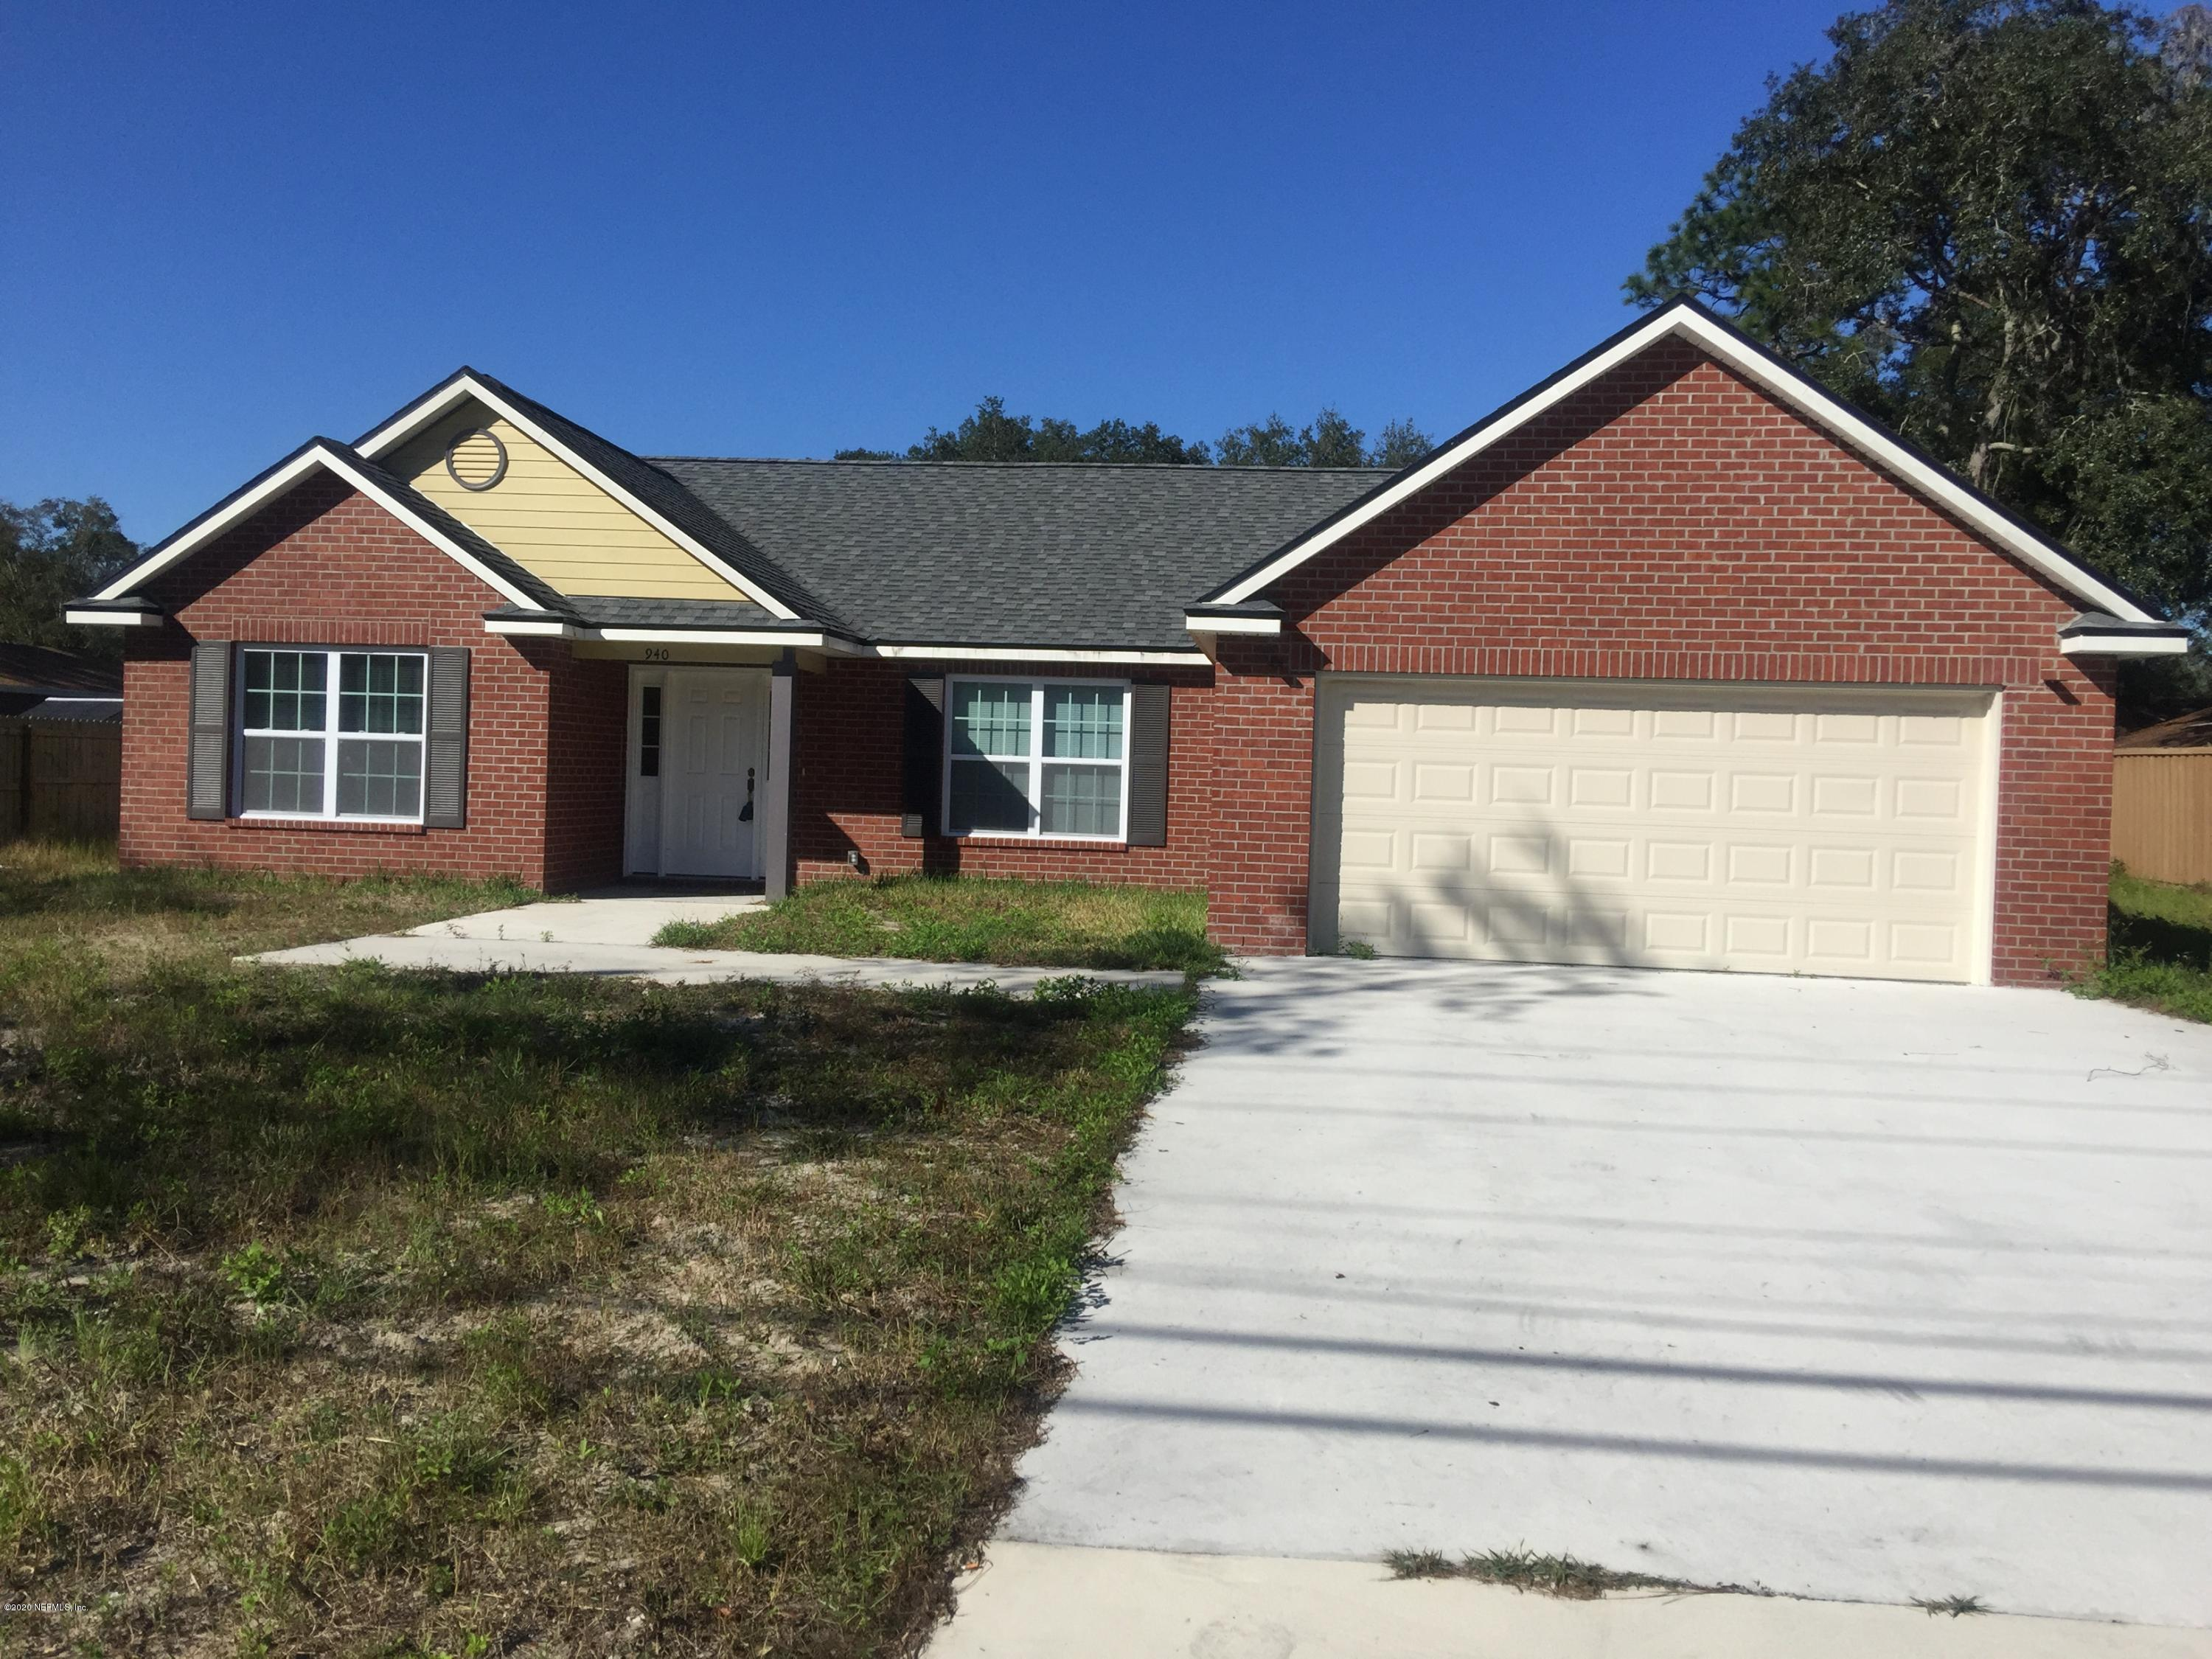 940 STATE RD 13, FRUIT COVE, FLORIDA 32259, 3 Bedrooms Bedrooms, ,2 BathroomsBathrooms,Rental,For Rent,STATE RD 13,1081023